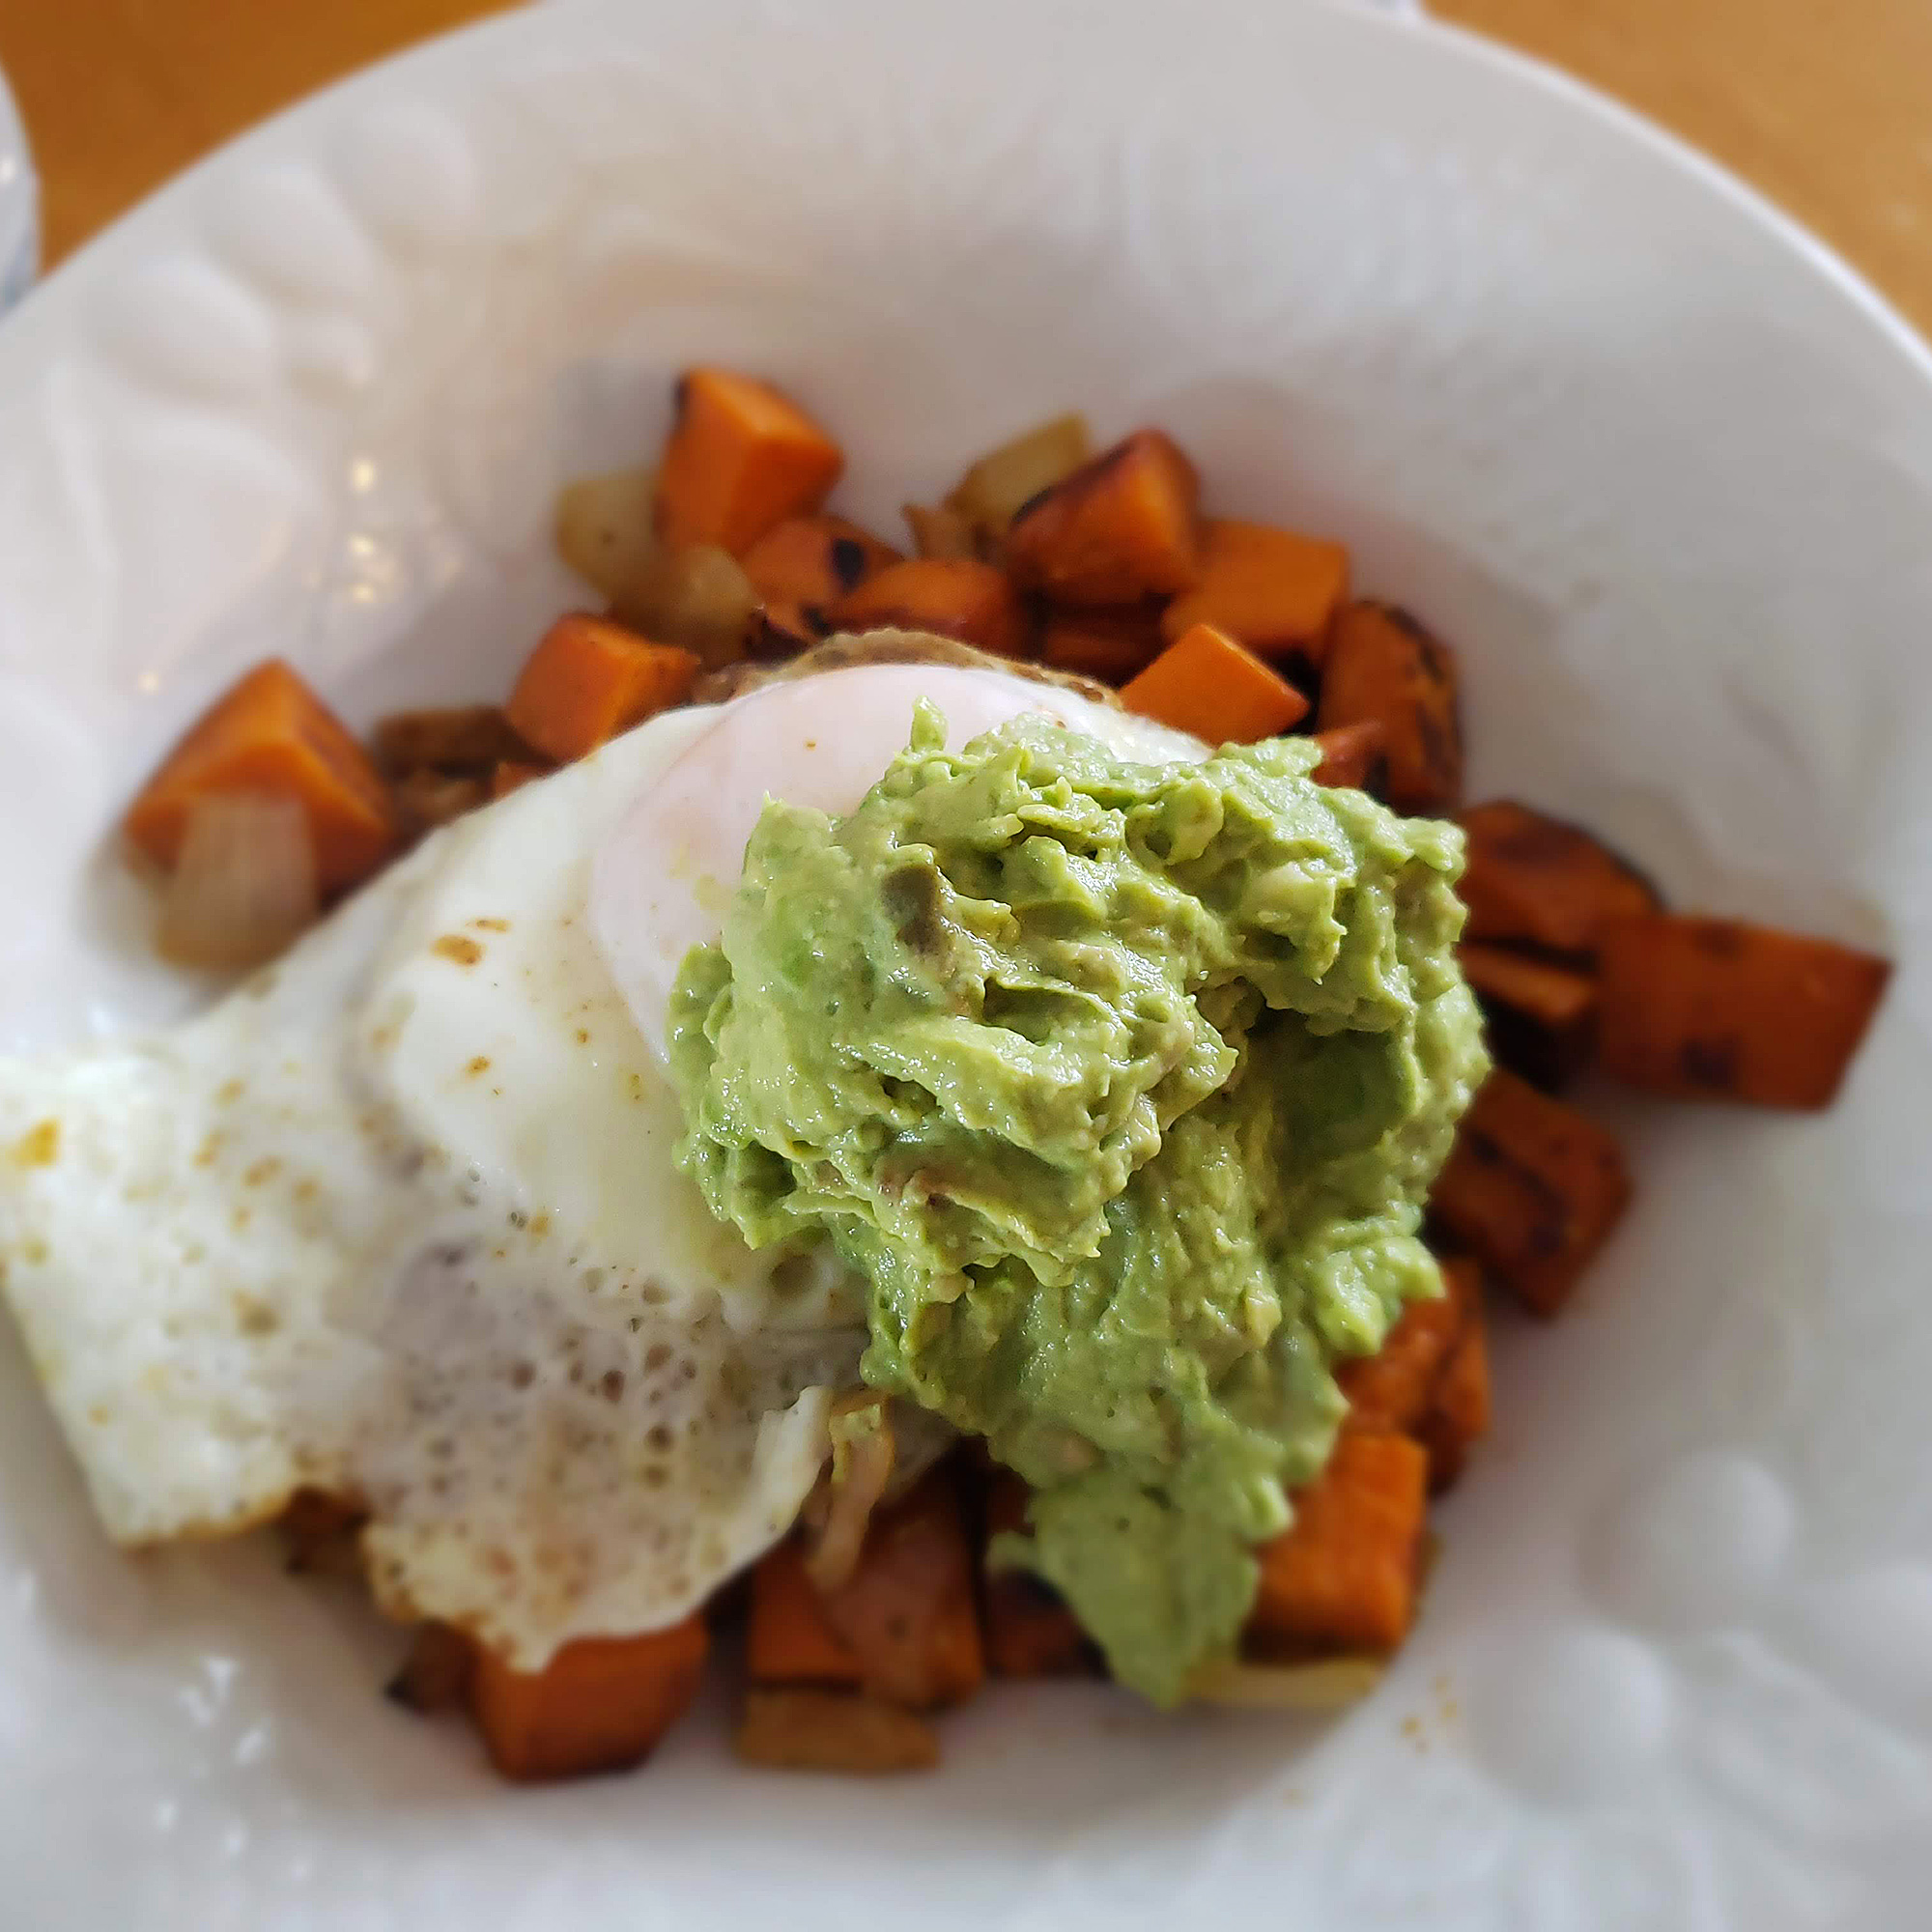 Sweet potato hash with fried egg and avocado aioli on a white plate